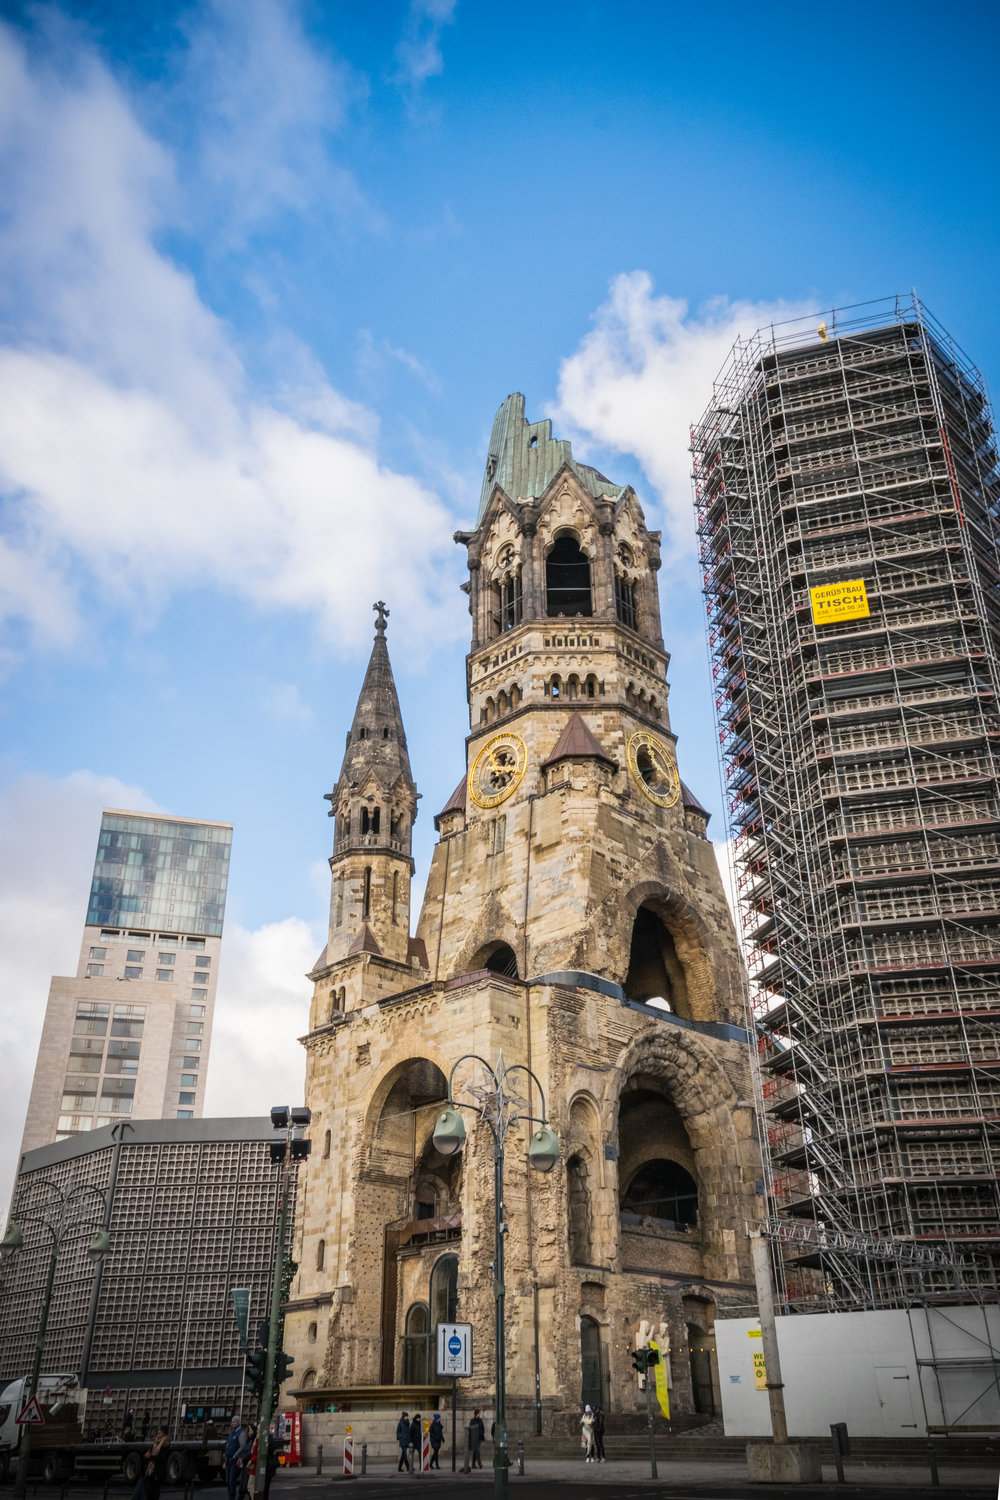 Kaiser Wilhelm Memorial Church, with new 'lipstick and powder compact' buildings